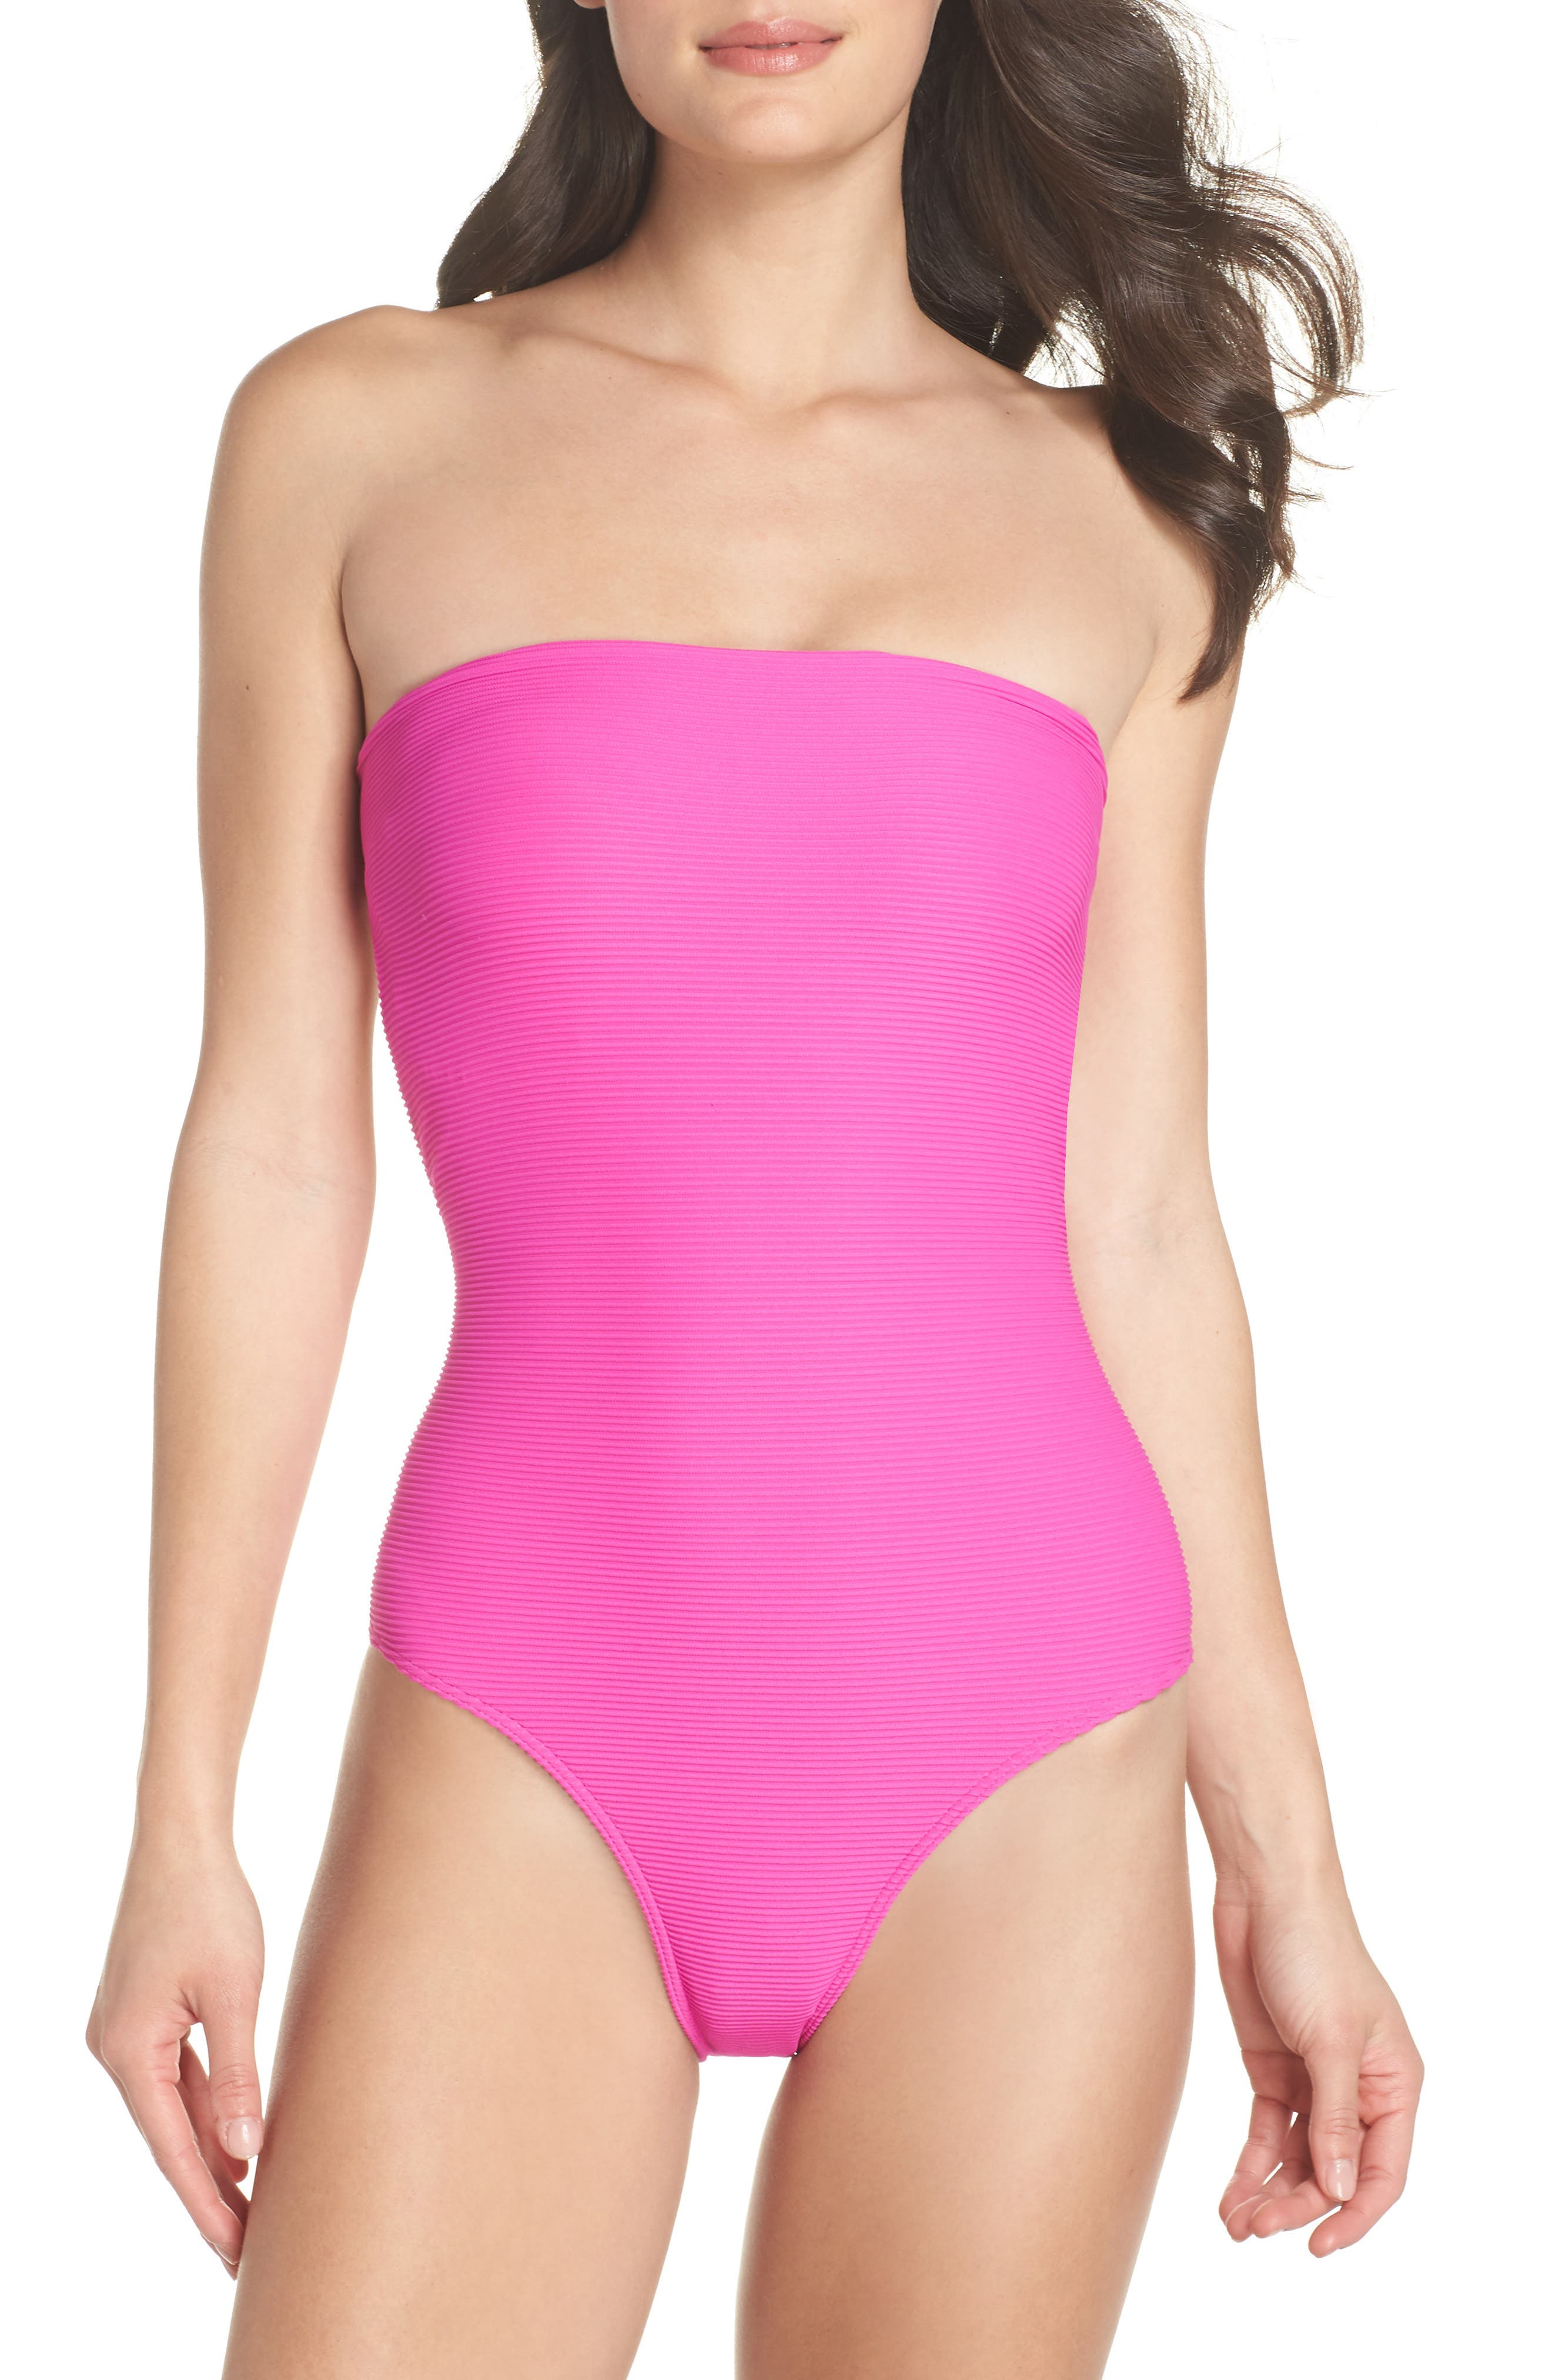 Tanlines Strapless One-Piece Swimsuit,                         Main,                         color, 685